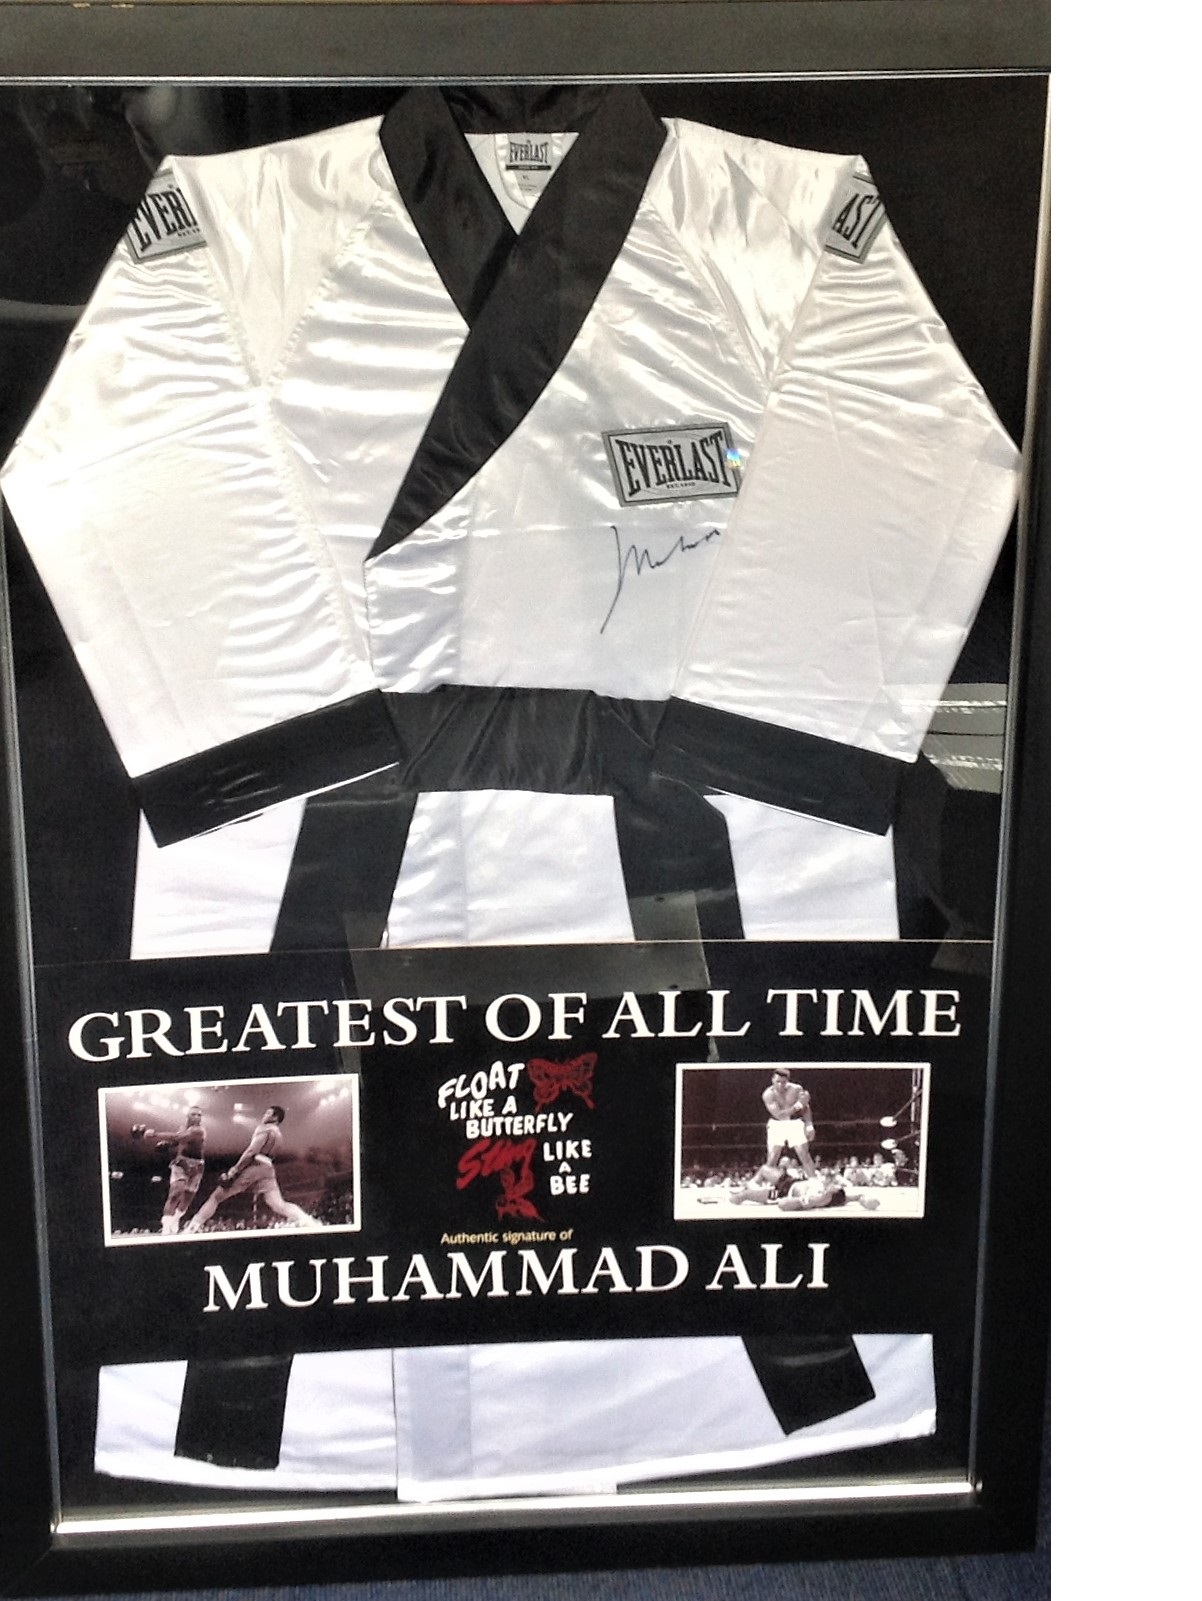 Lot 1 - Boxing Float like a butterfly sting like a Bee Muhammad Ali 56x38 mounted and framed signed Everlast